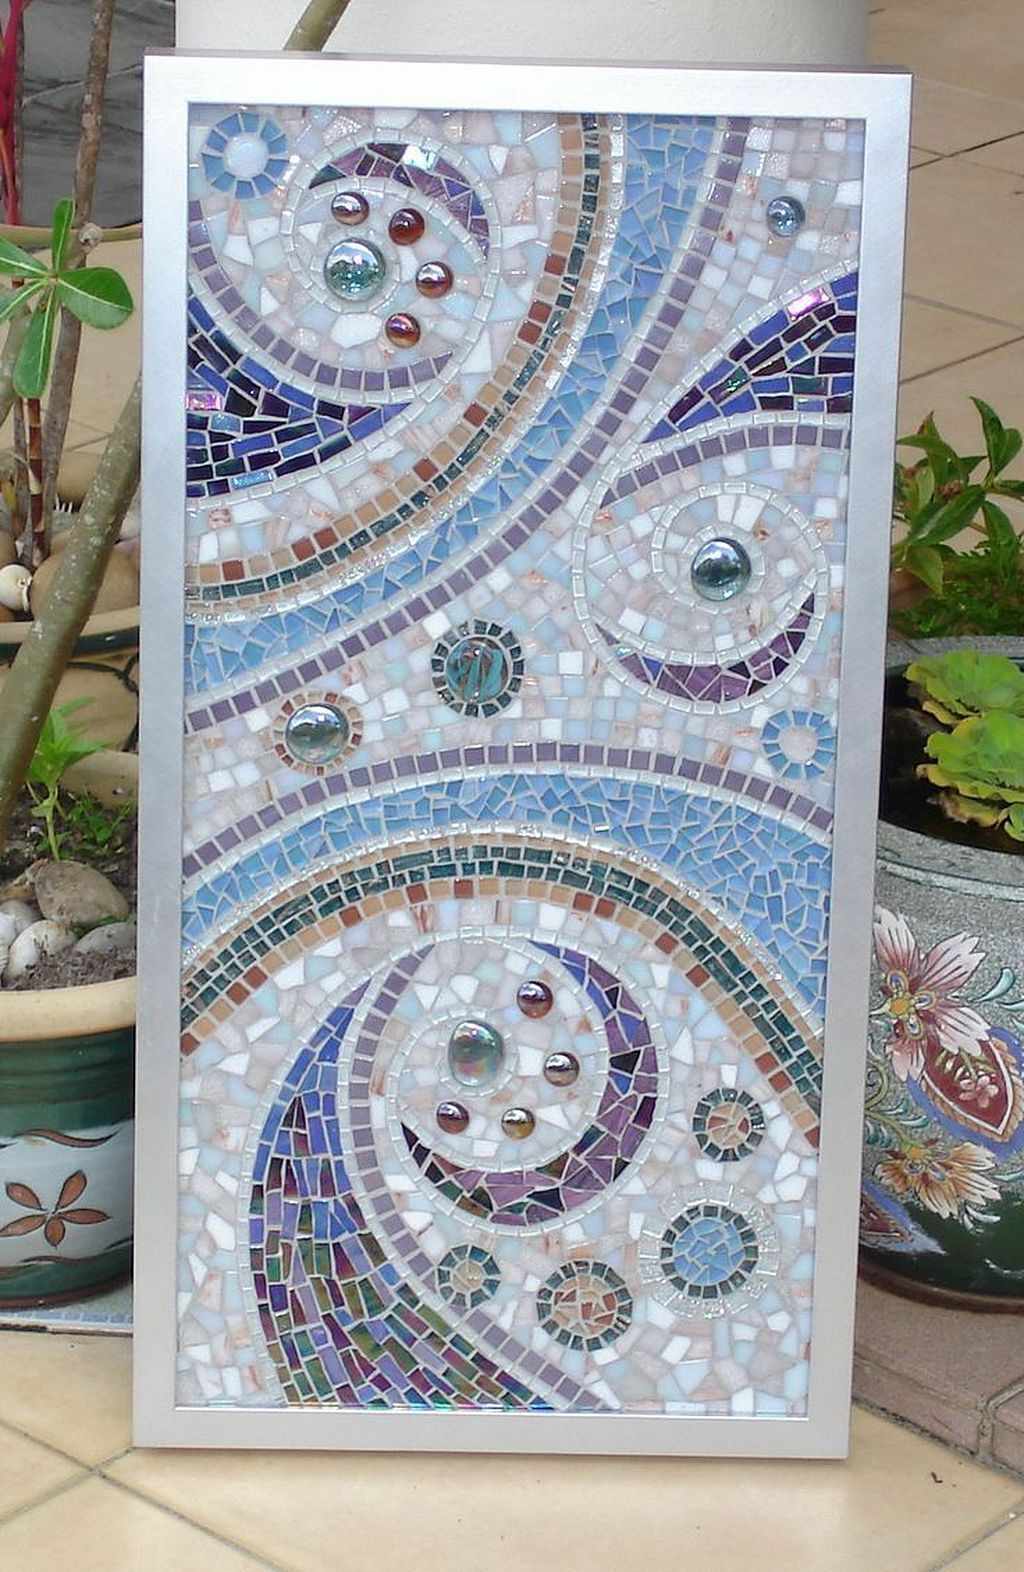 Incredible Mosaic Design Ideas 5 Beadwork & Crafts